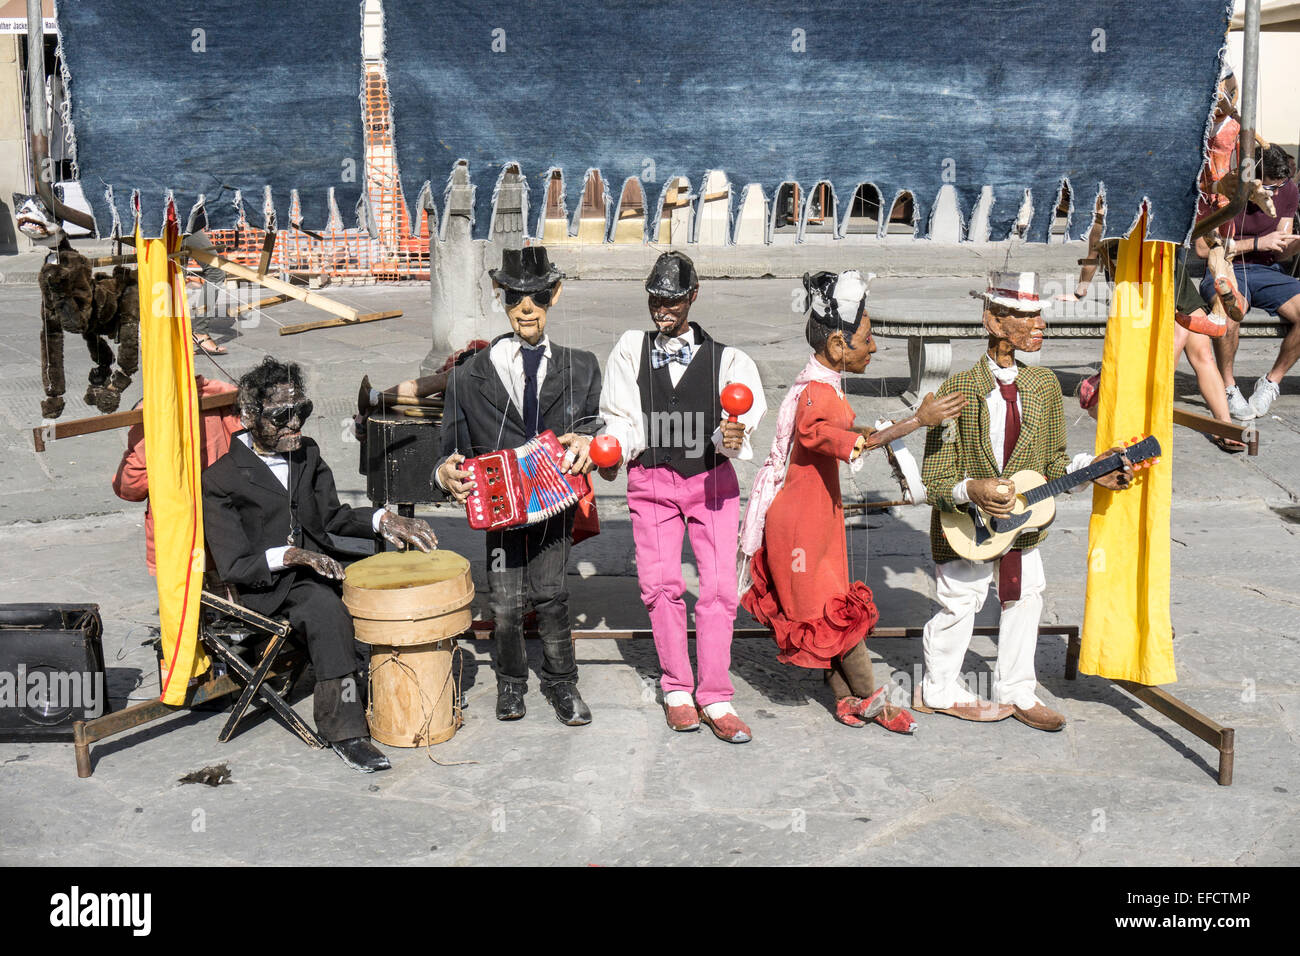 colorful old time blackface minstrel show with large worn lifelike puppets ready to perform in Piazza Santa Croce - Stock Image